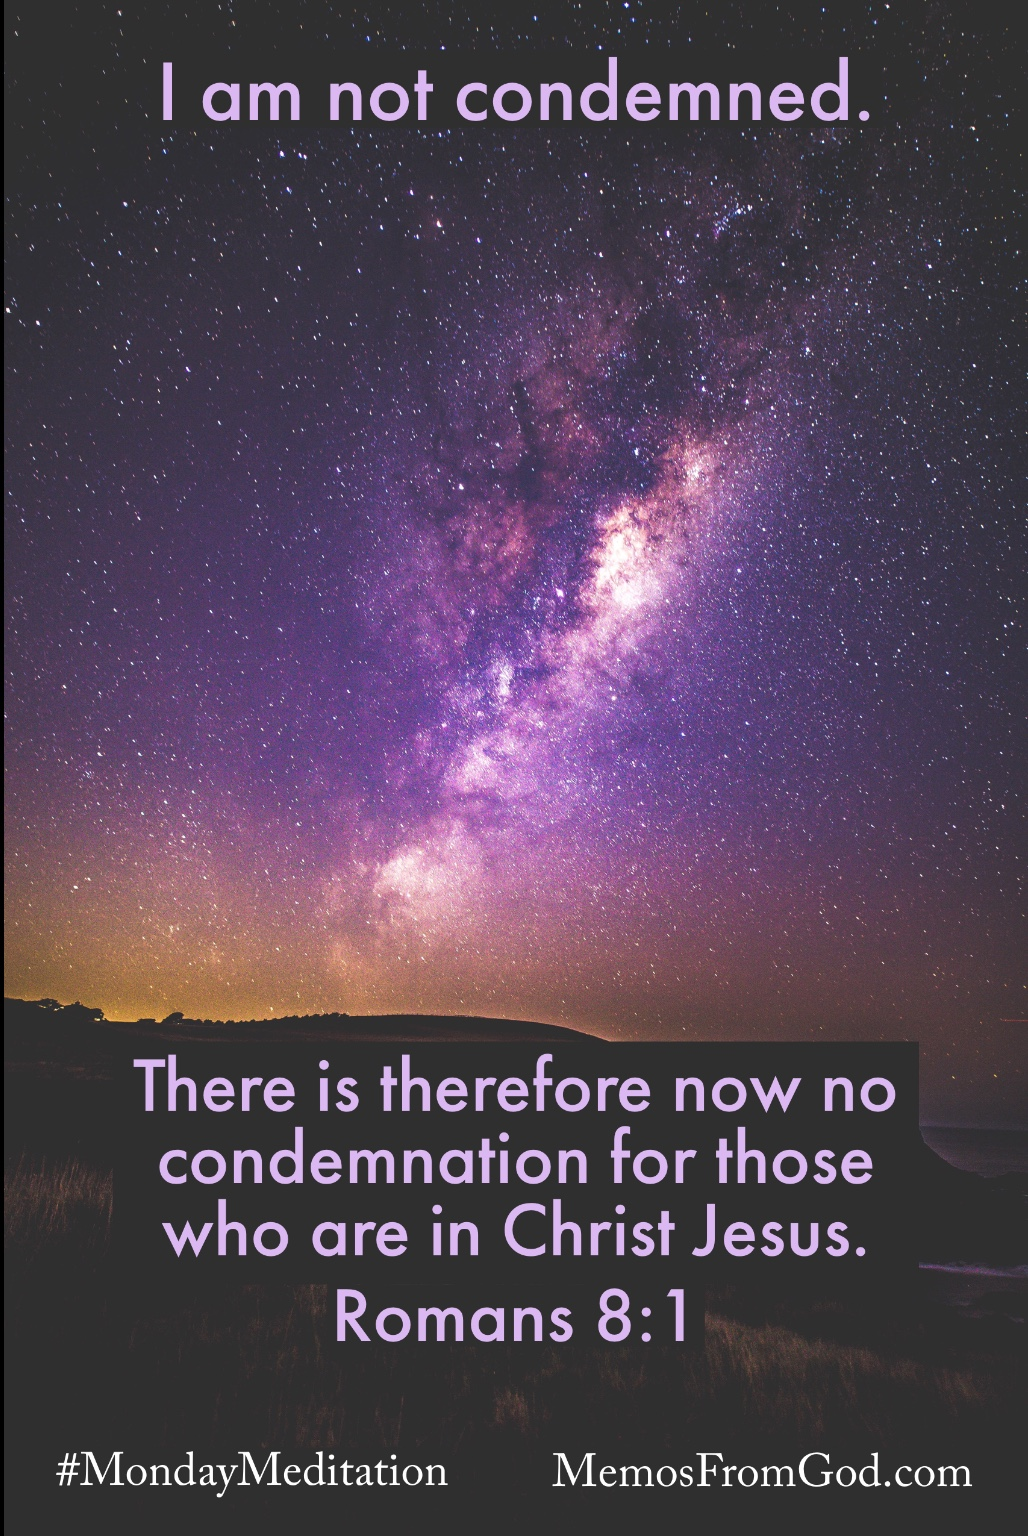 The Milky Way in a dark purple sky. Caption: There is therefore now no condemnation for those who are in Christ Jesus. Romans 8:1